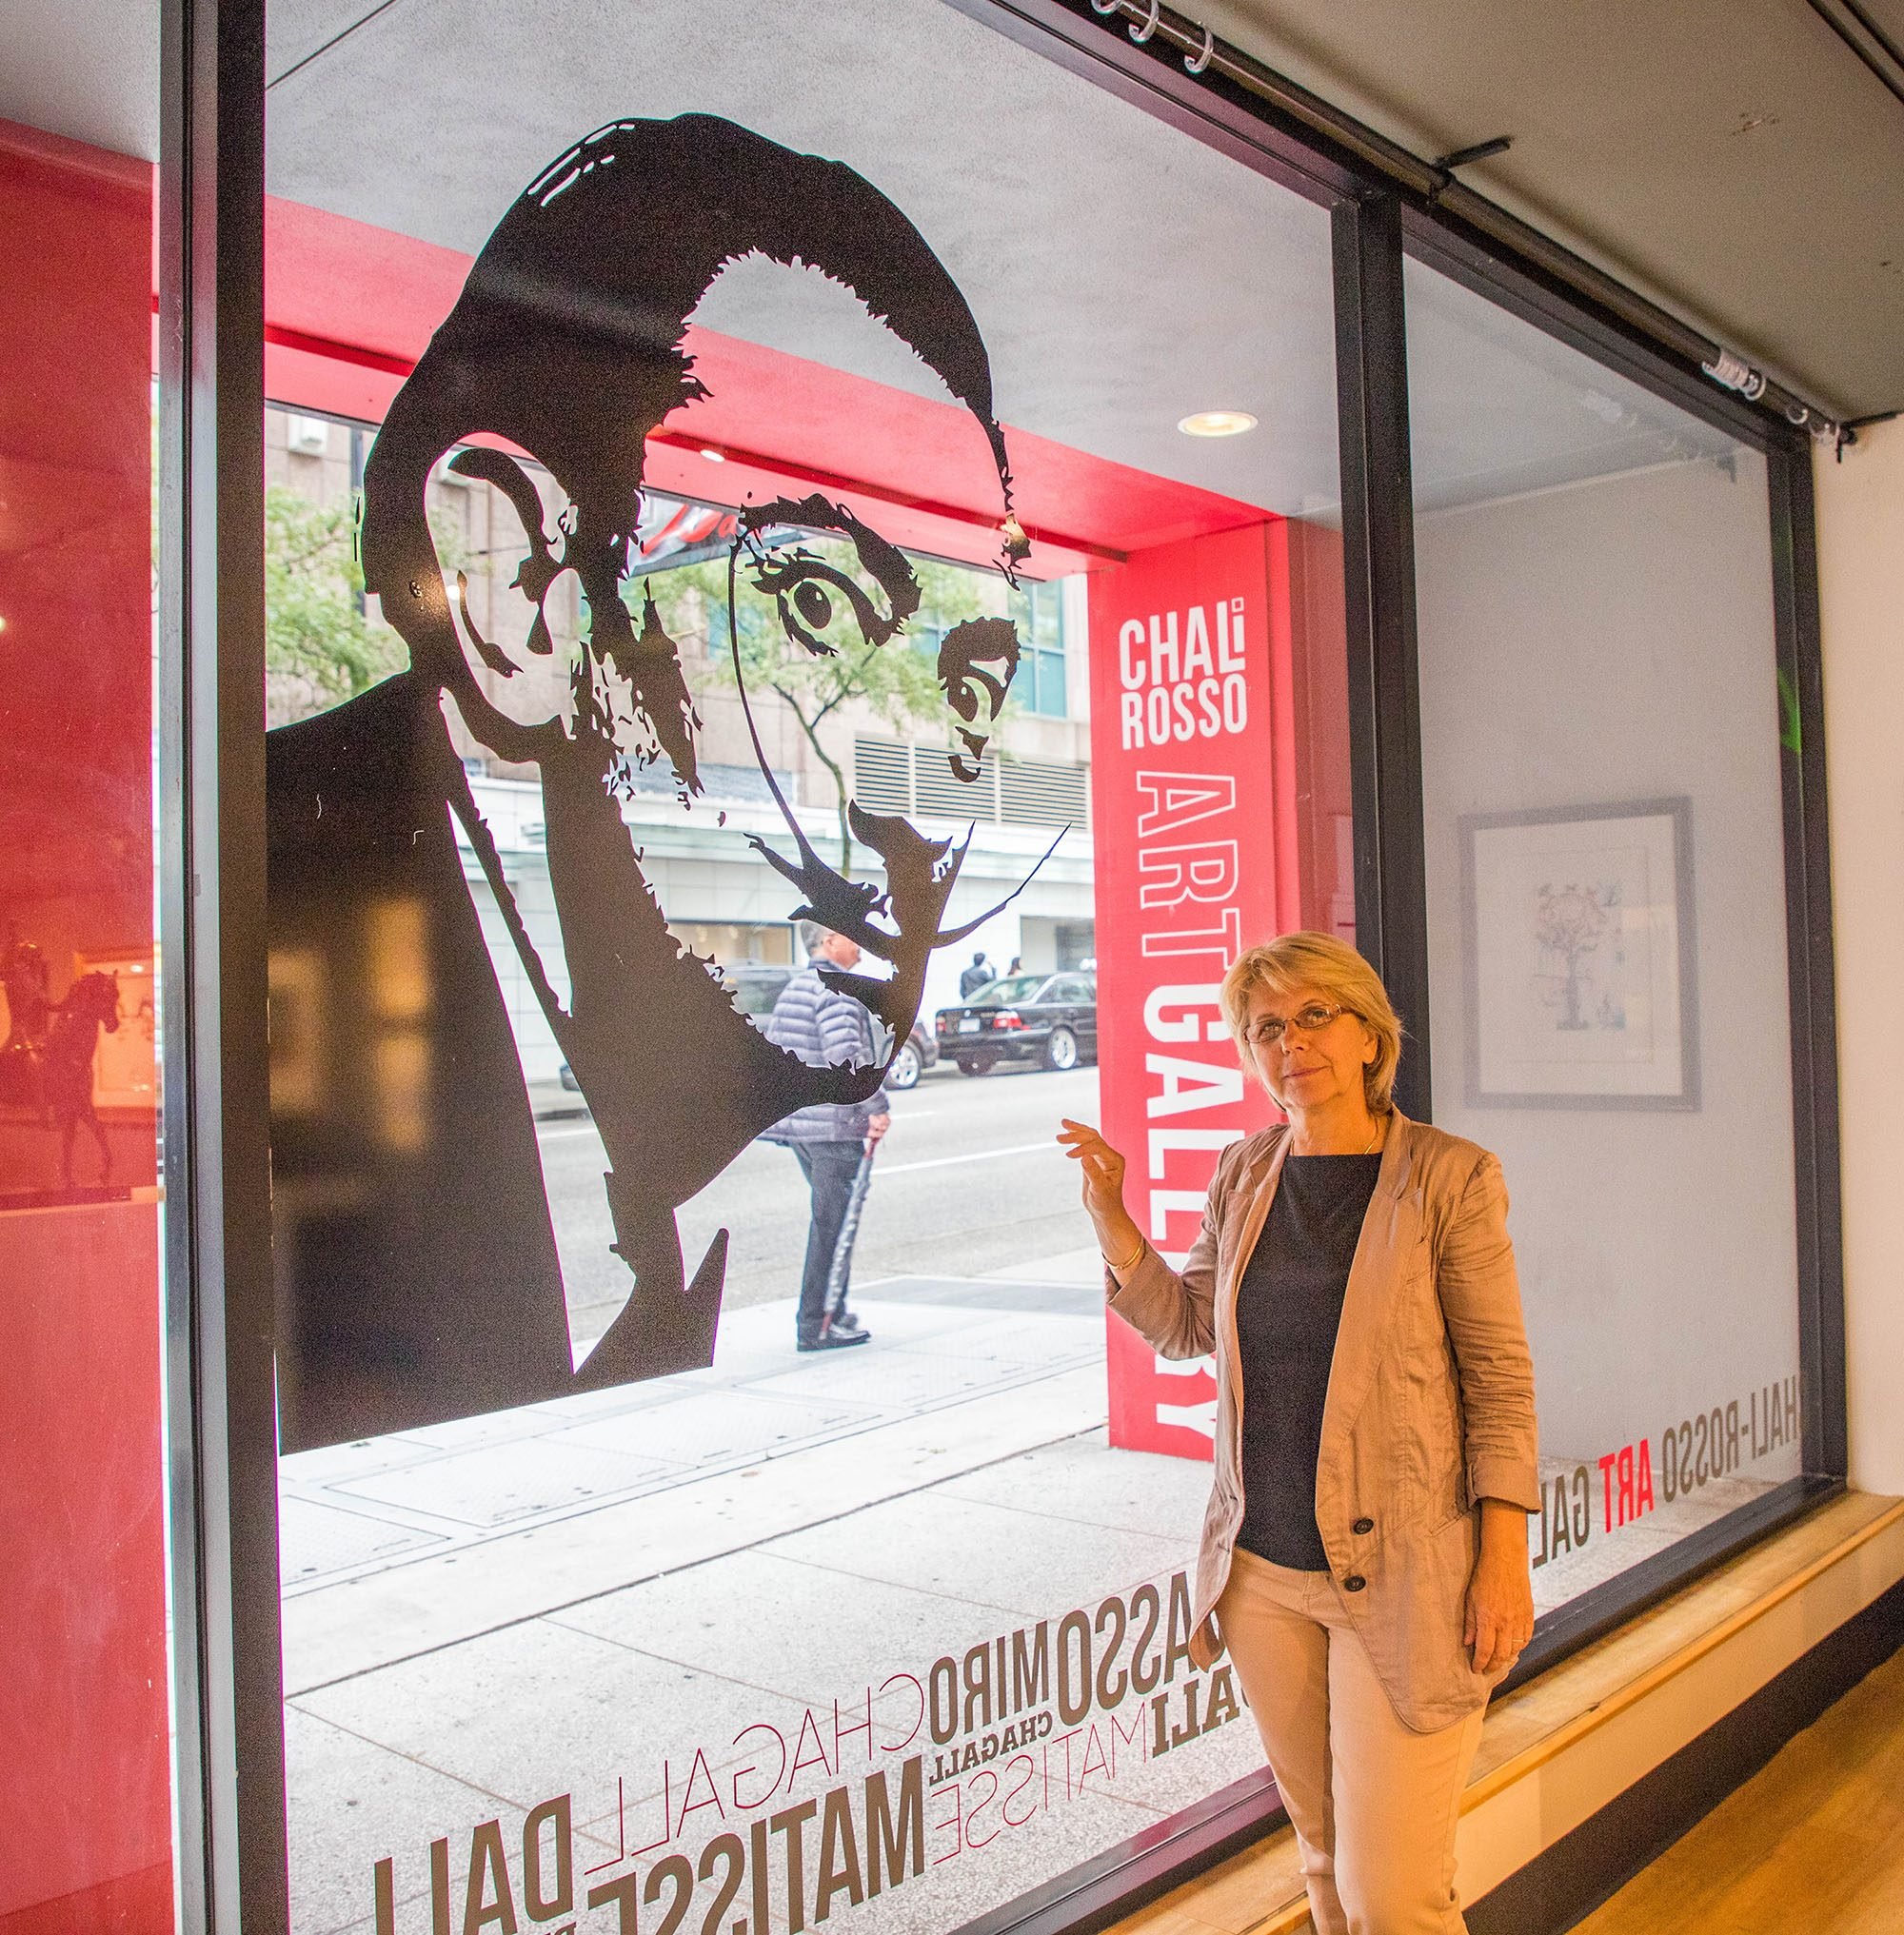 Susanna Strem, Chali-Rosso Gallery owner, and Salvador Dalí print (Jenni Sheppard/Daily Hive)